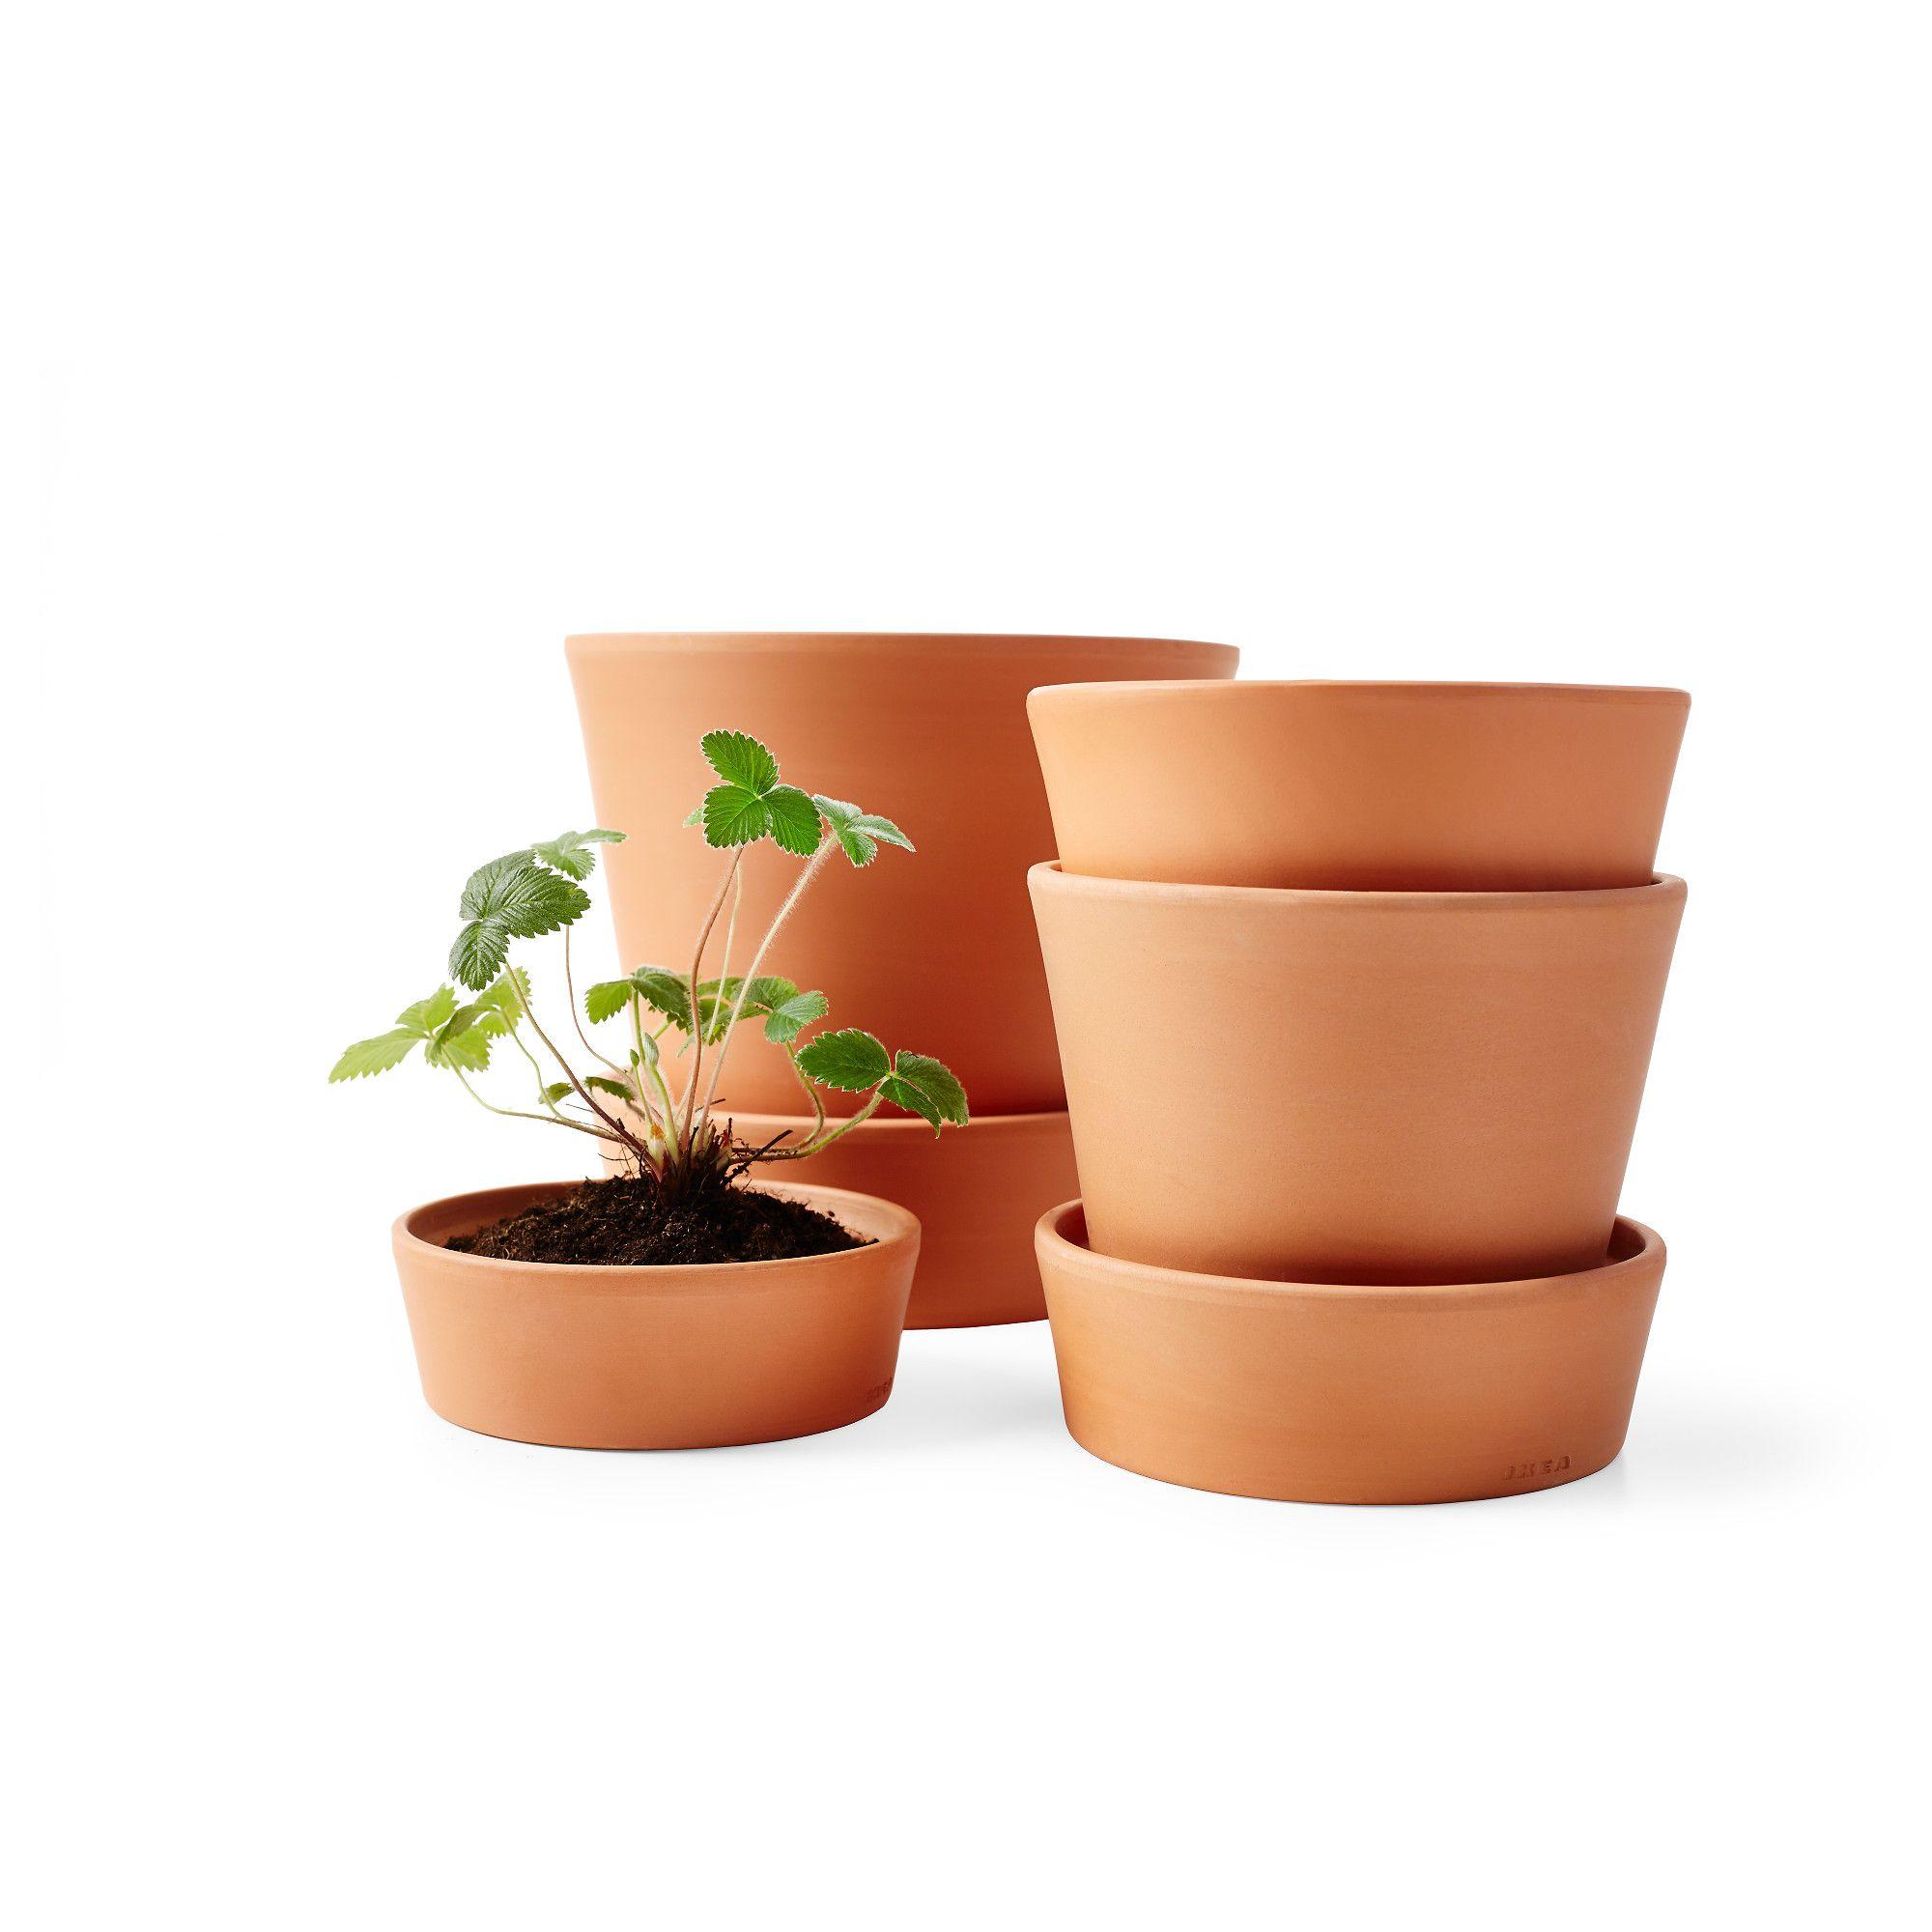 Balcony Planter Ikea IngefÄra Plant Pot With Saucer Outdoor Indoor Outdoor